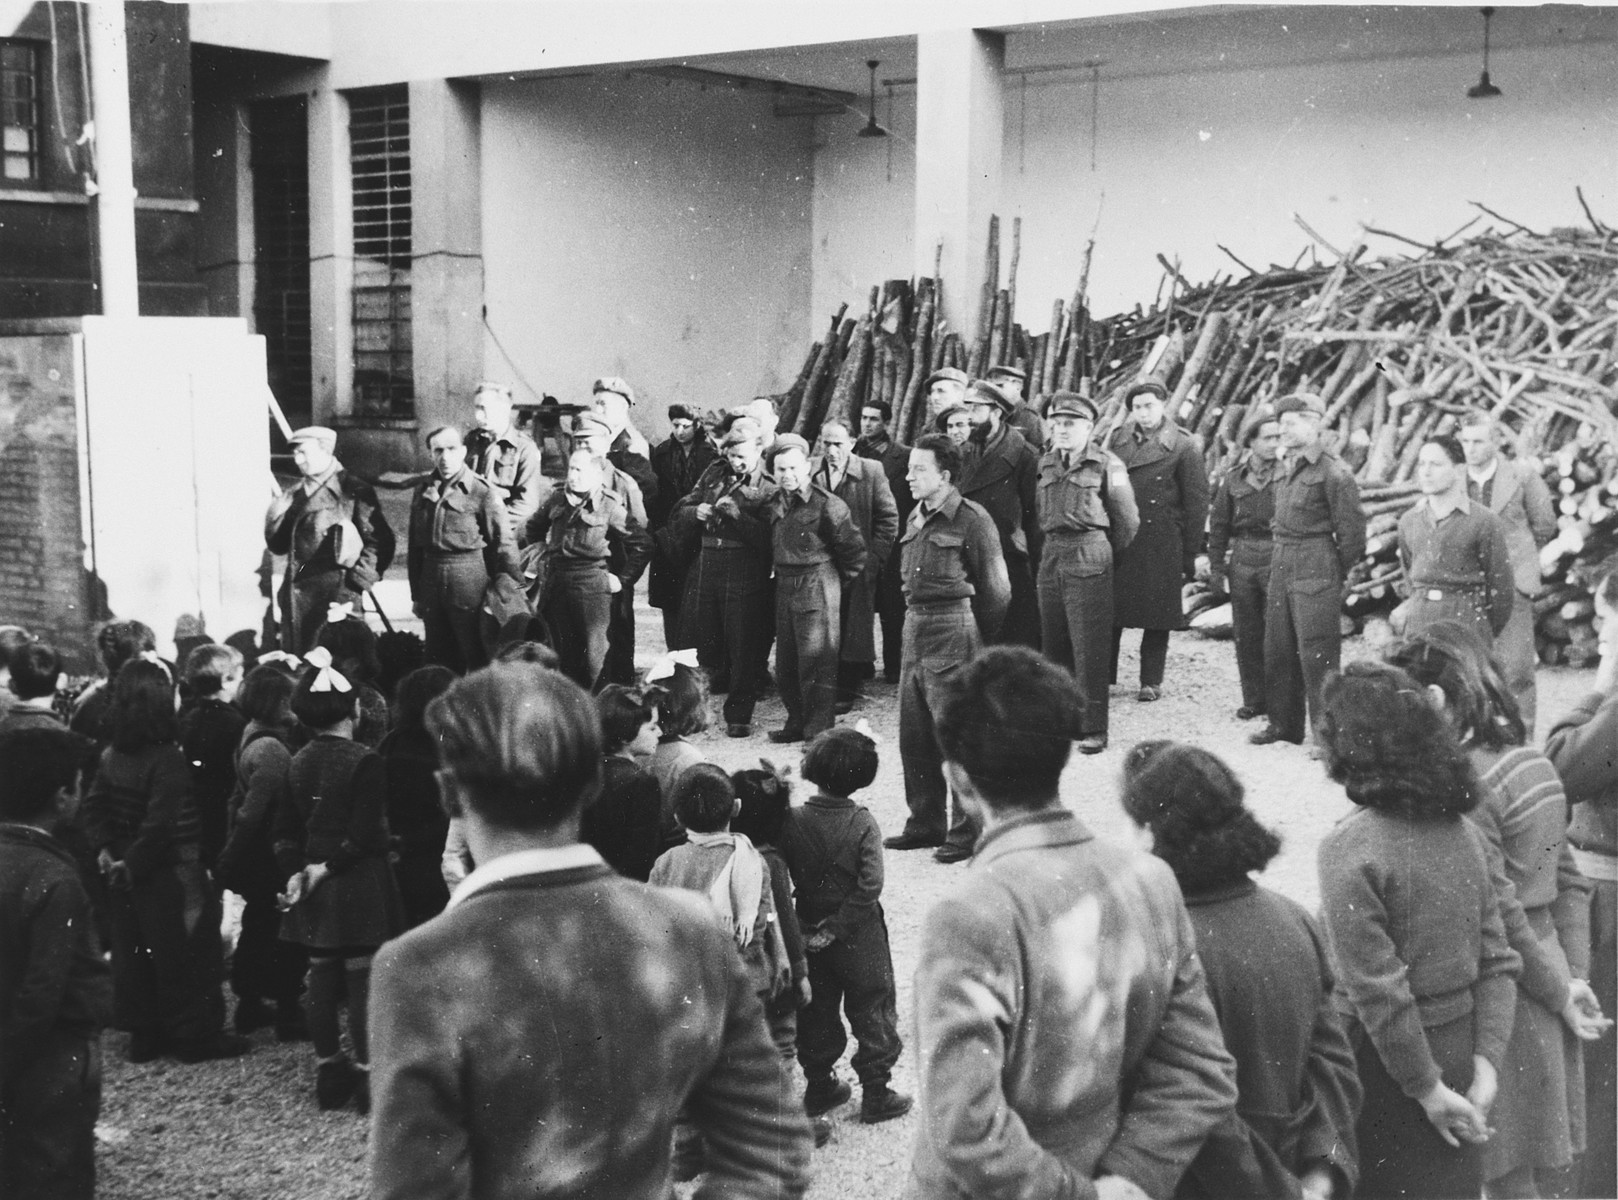 Children and youth stand at attention during a gathering with a delegation from the Joint Distribution Committee in the Selvino children's home.  A chache of weapons can be seen in the rear.  Moshe Zeiri, the director of the Selvino home, is standing in middle with his hands behind his back.